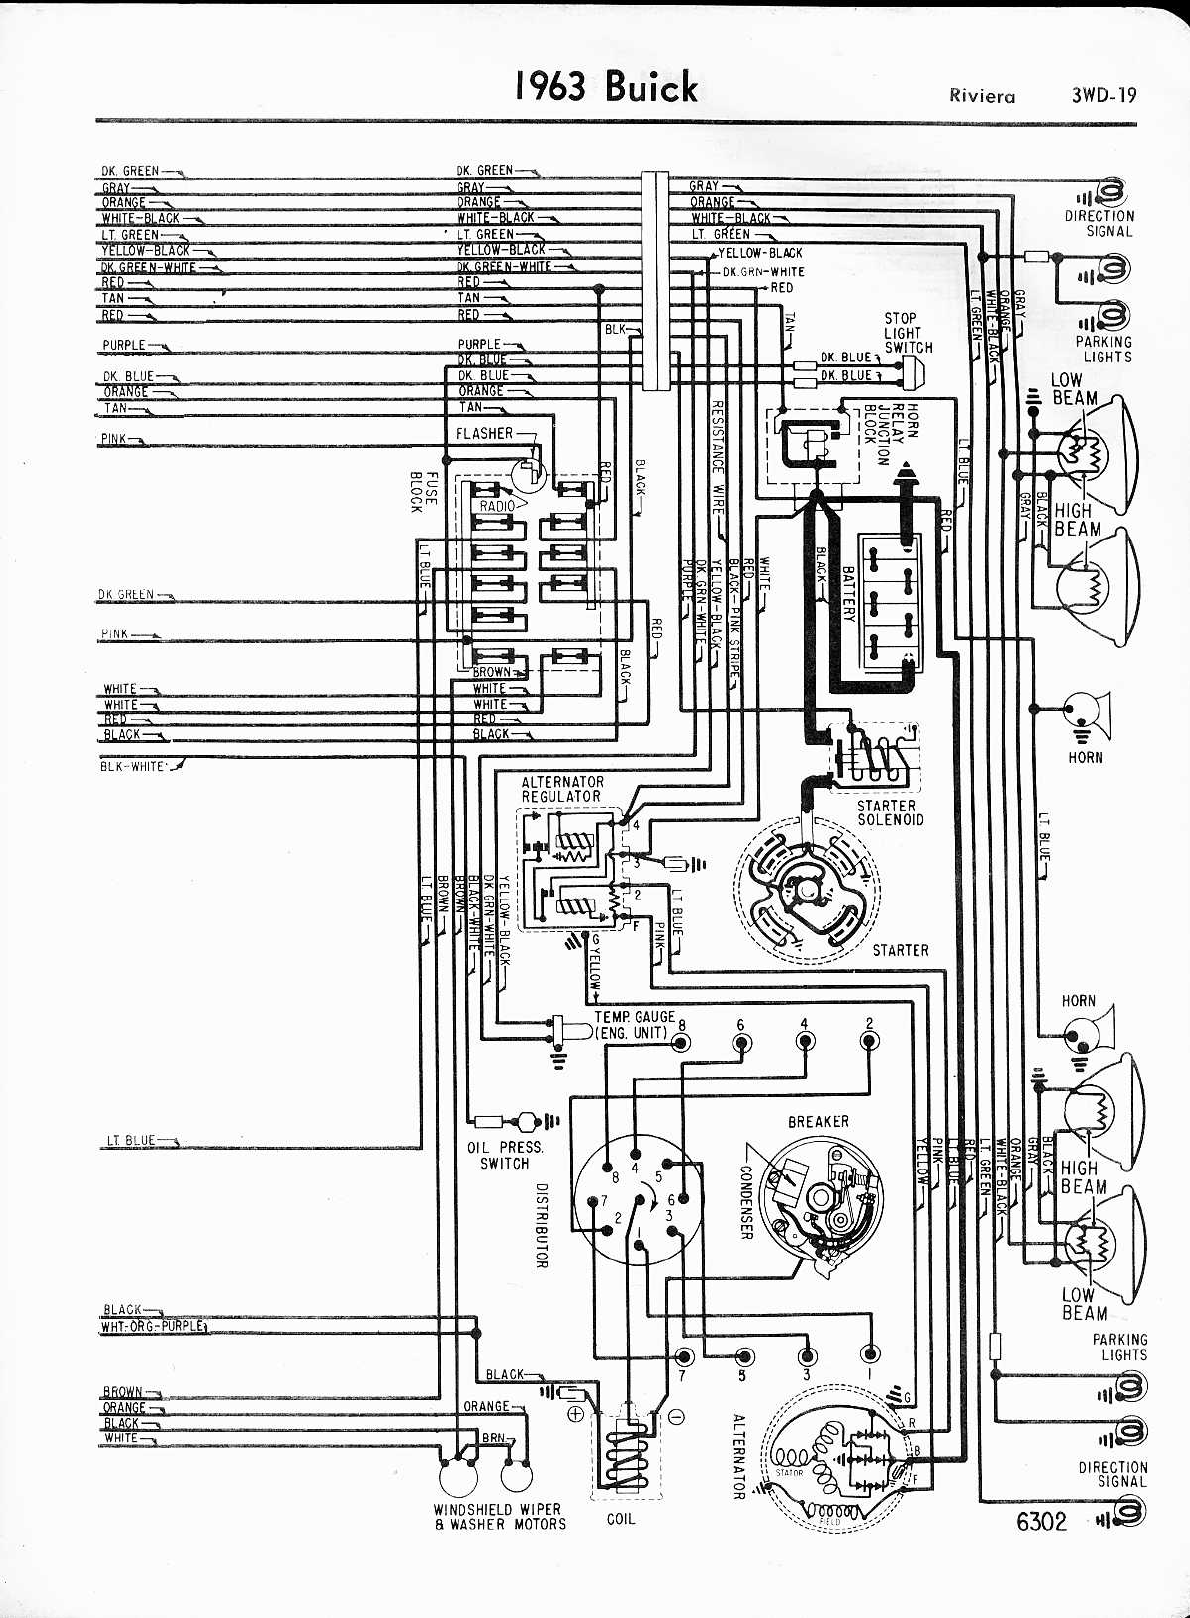 buick riviera wiring diagram all wiring diagram buick riviera wiring diagram